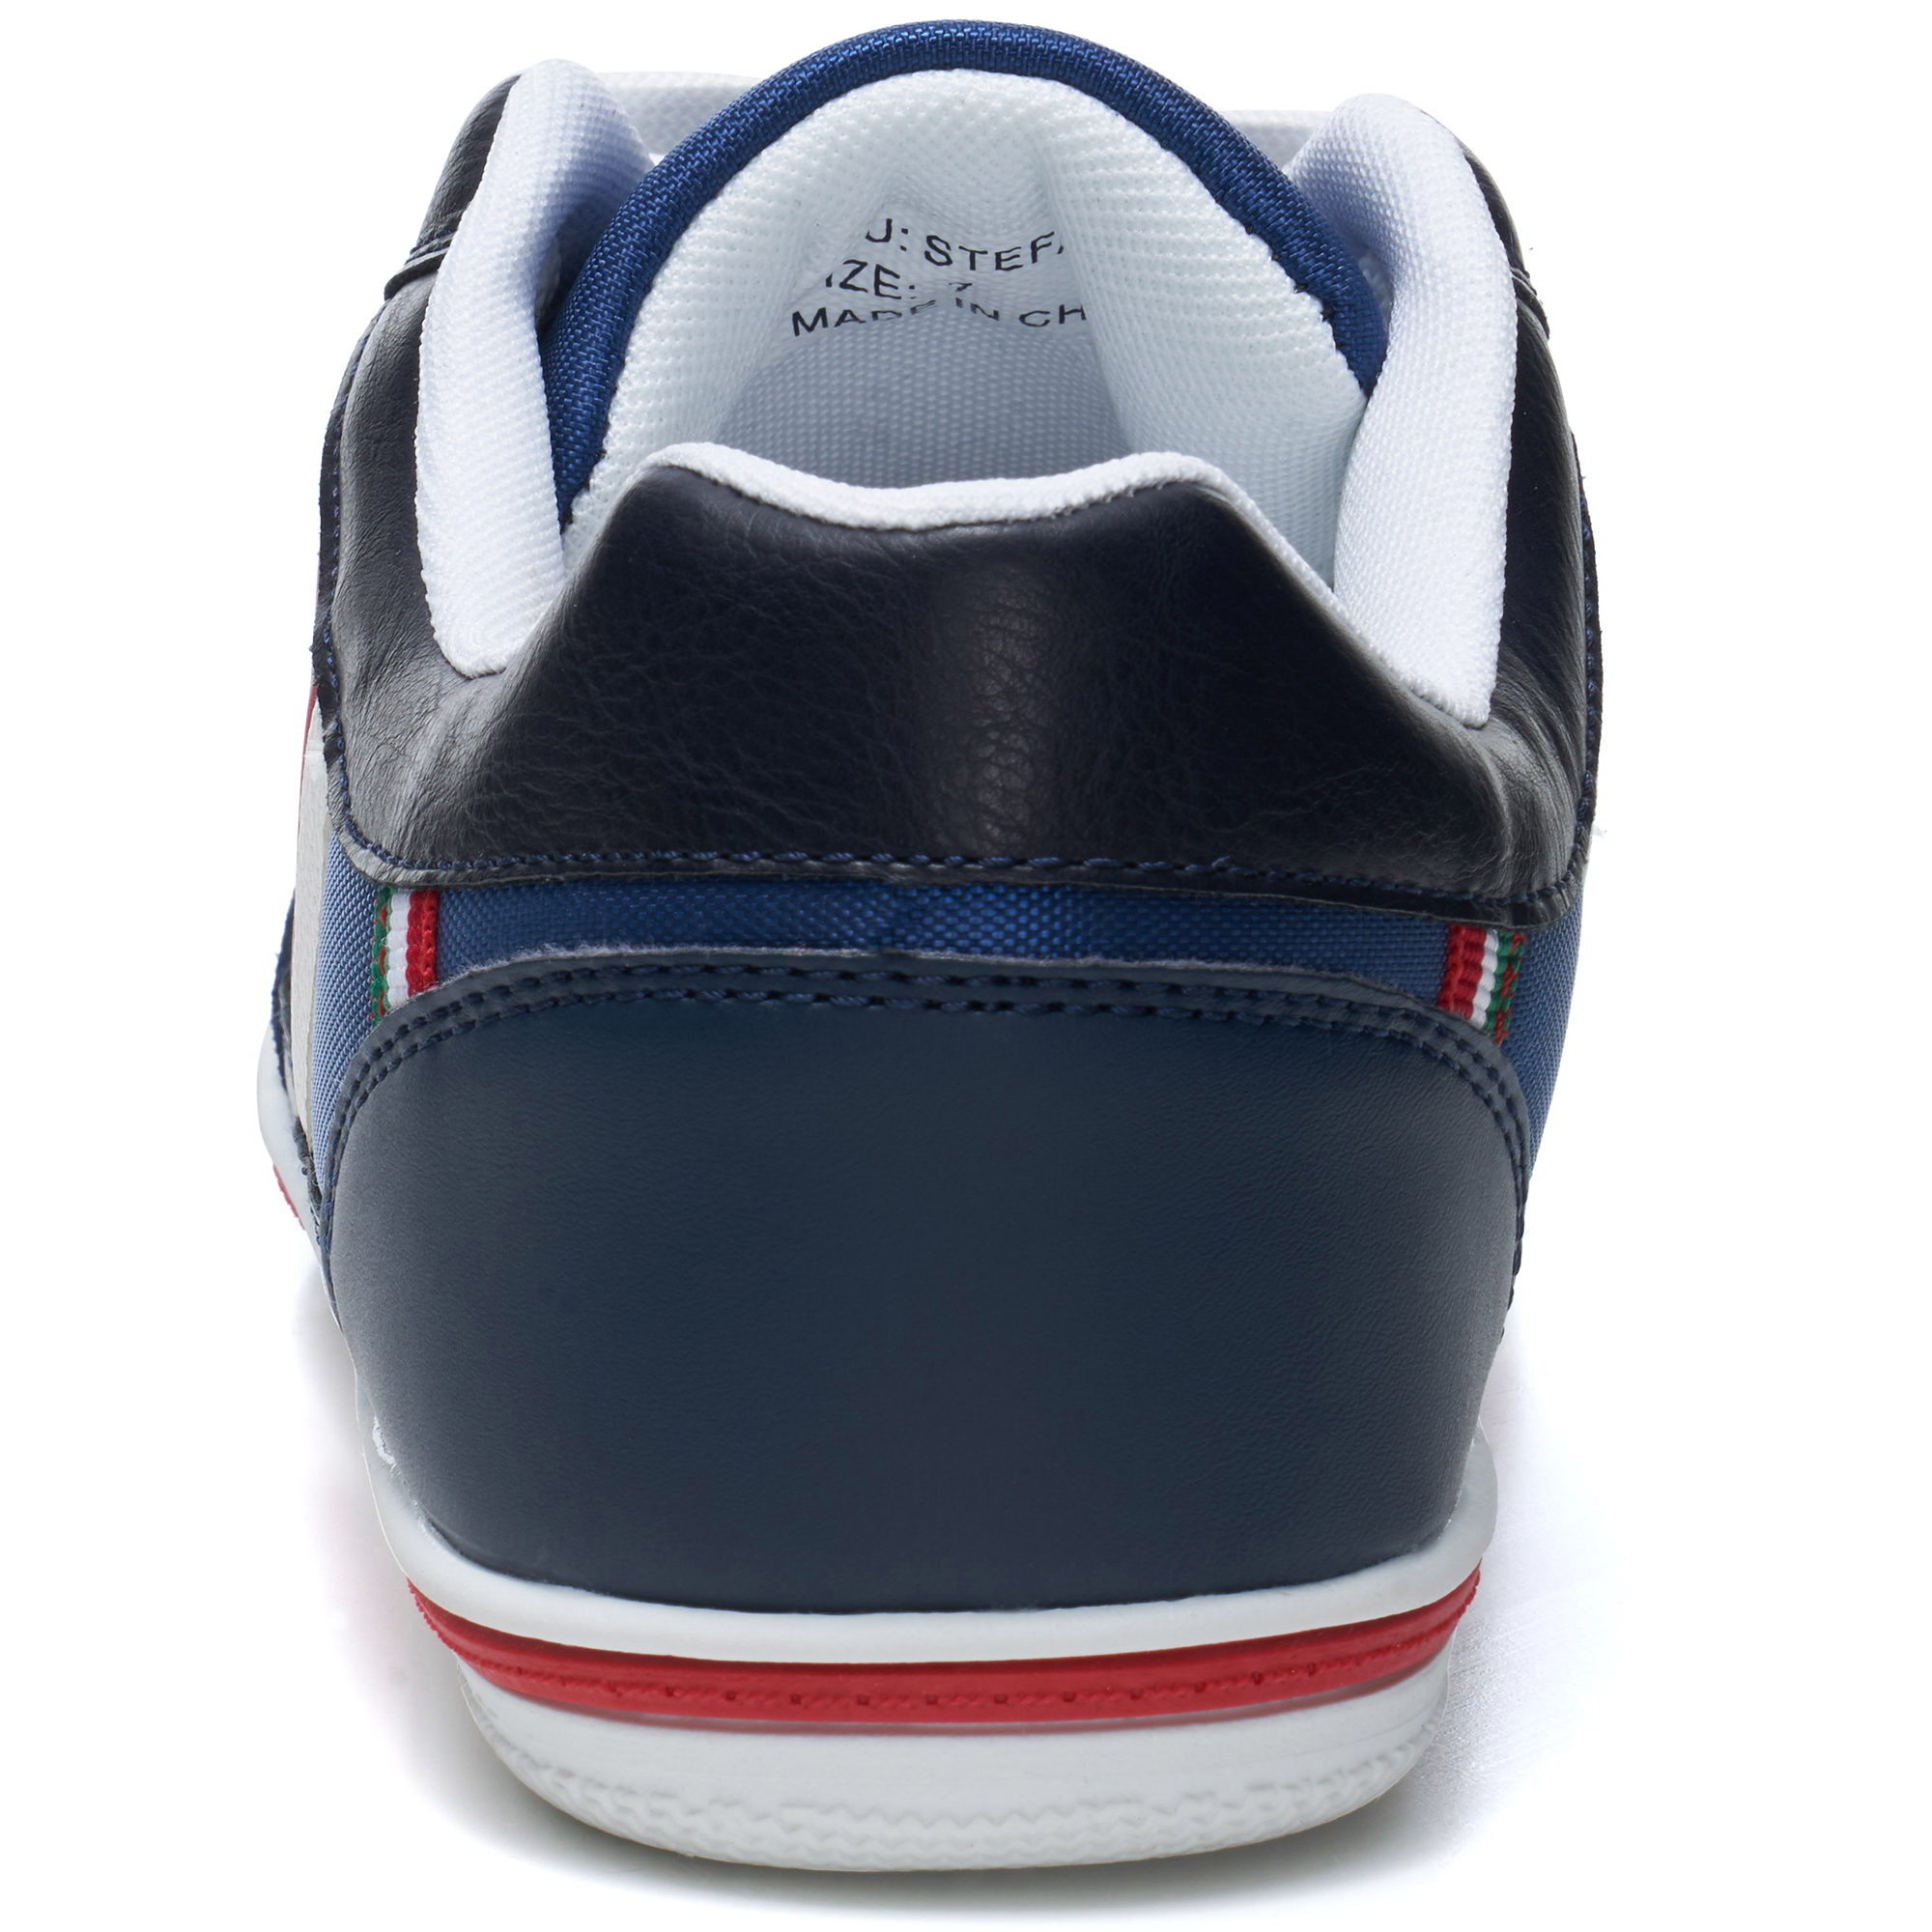 Alpine-Swiss-Stefan-Mens-Retro-Fashion-Sneakers-Tennis-Shoes-Casual-Athletic-New thumbnail 32